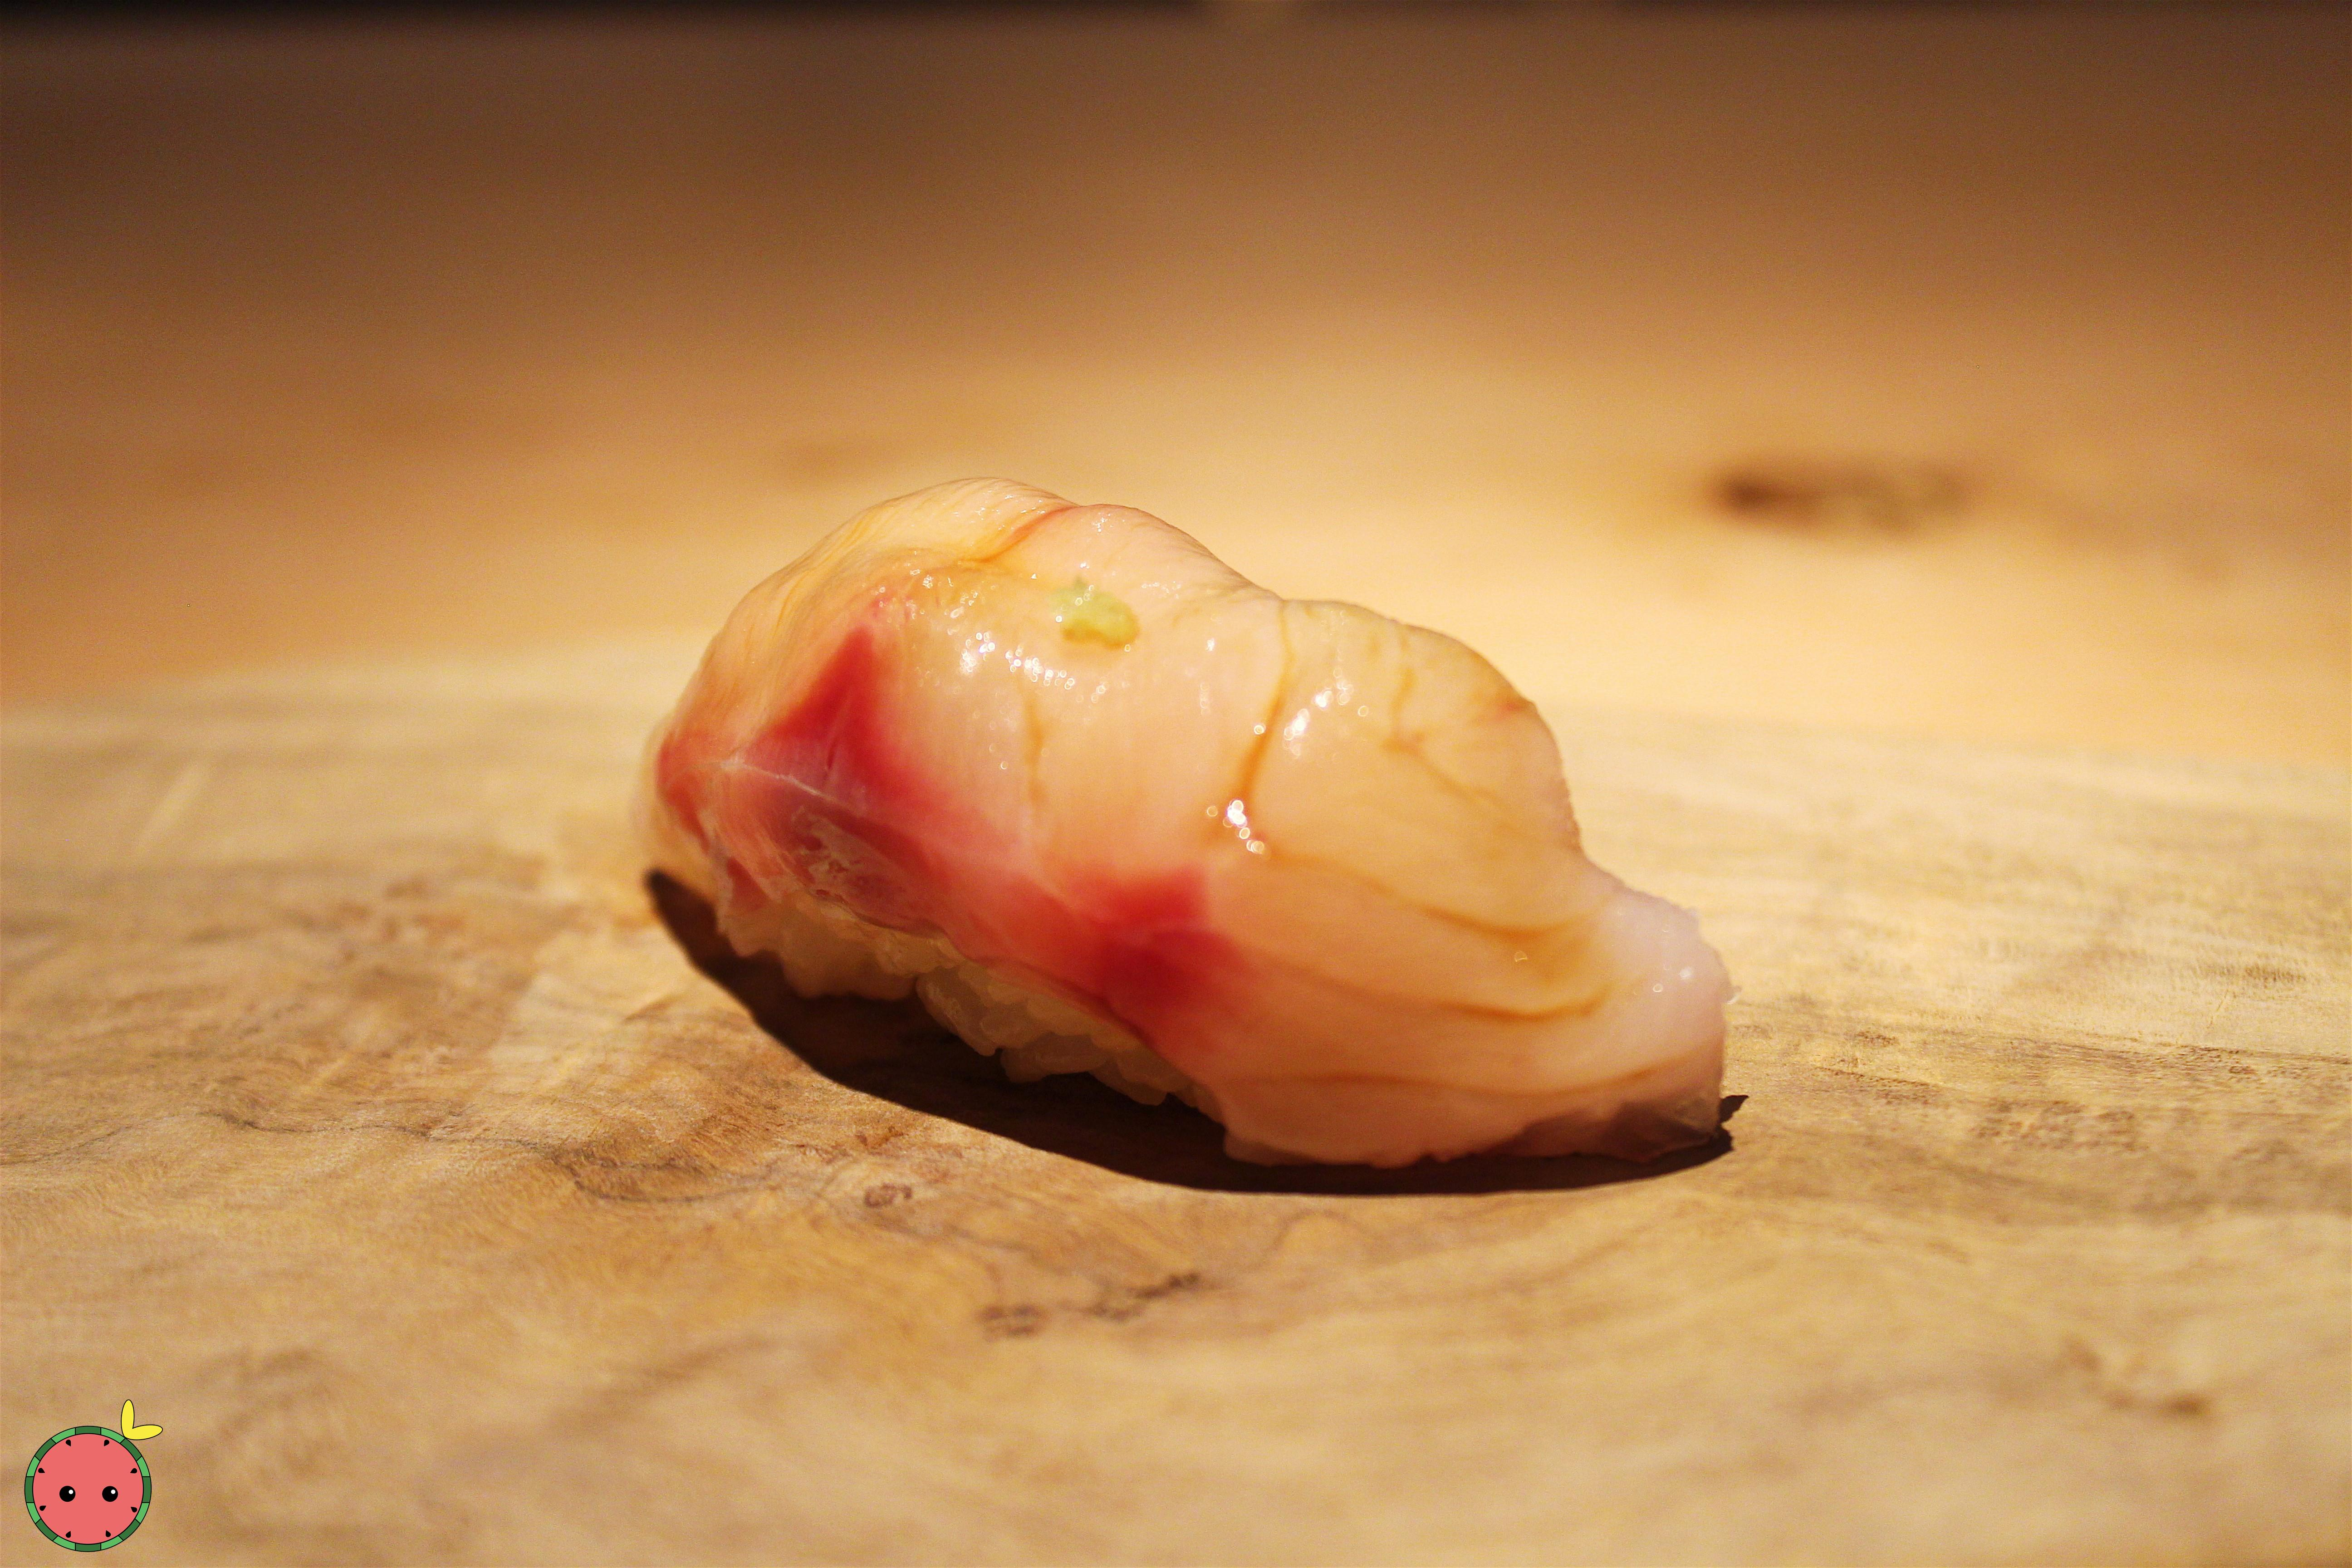 Akamutsu from the east coast of Japan with freshly grated ginger